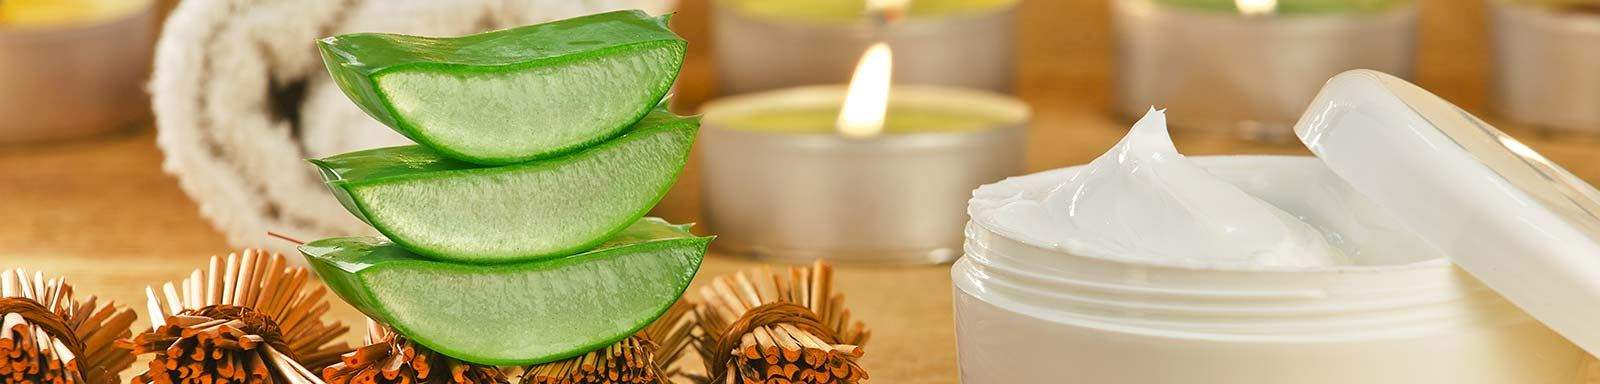 Rehoboth Beach Spa Gift Certificate Holiday Sale